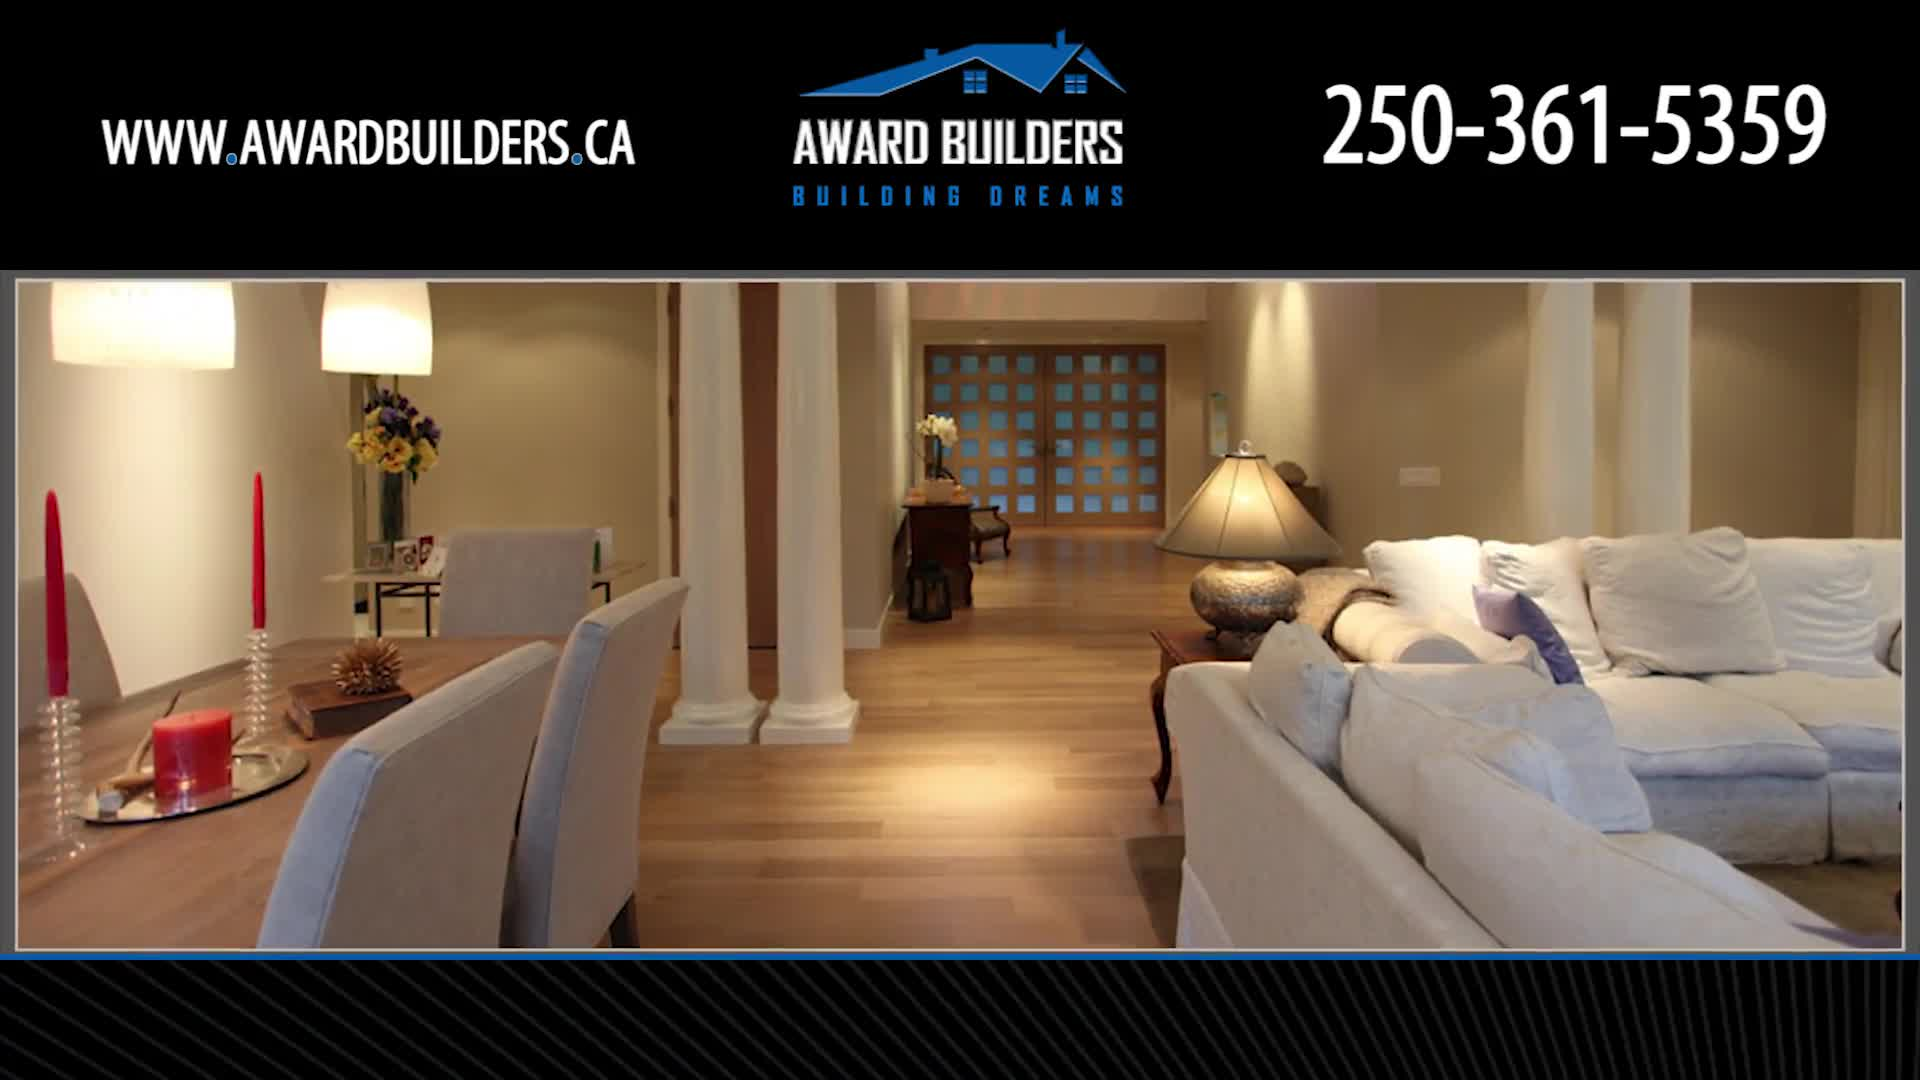 Award Builders Ltd - Building Contractors - 250-361-5359